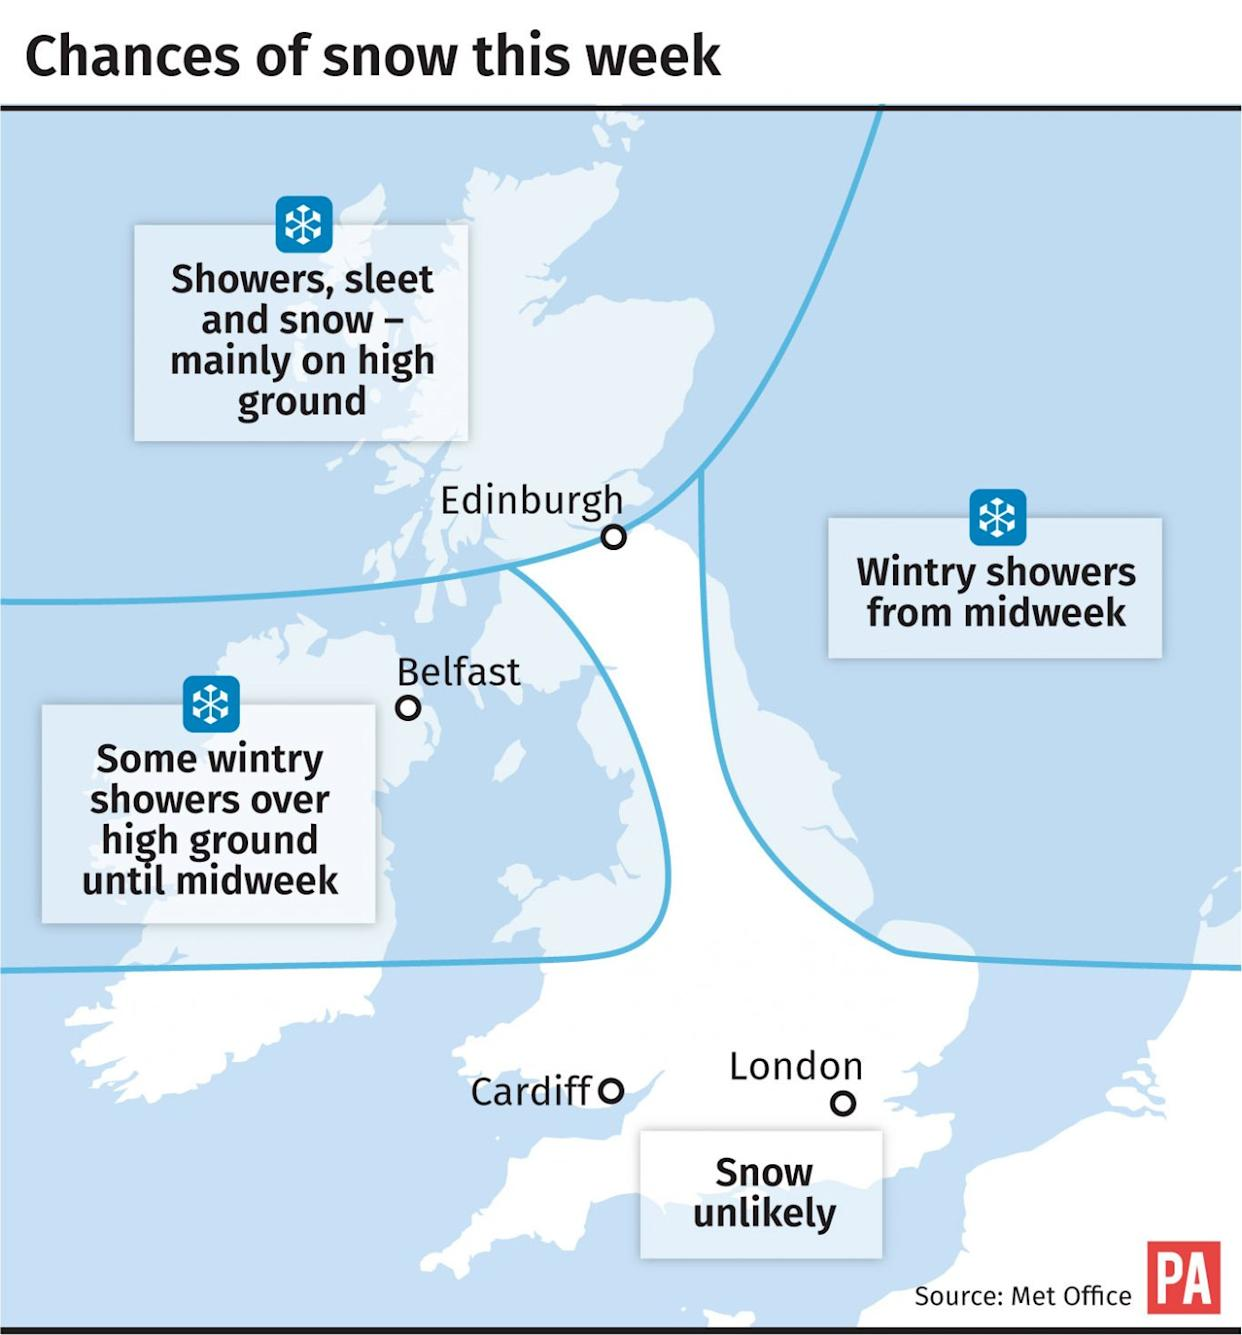 Chances of snow this week